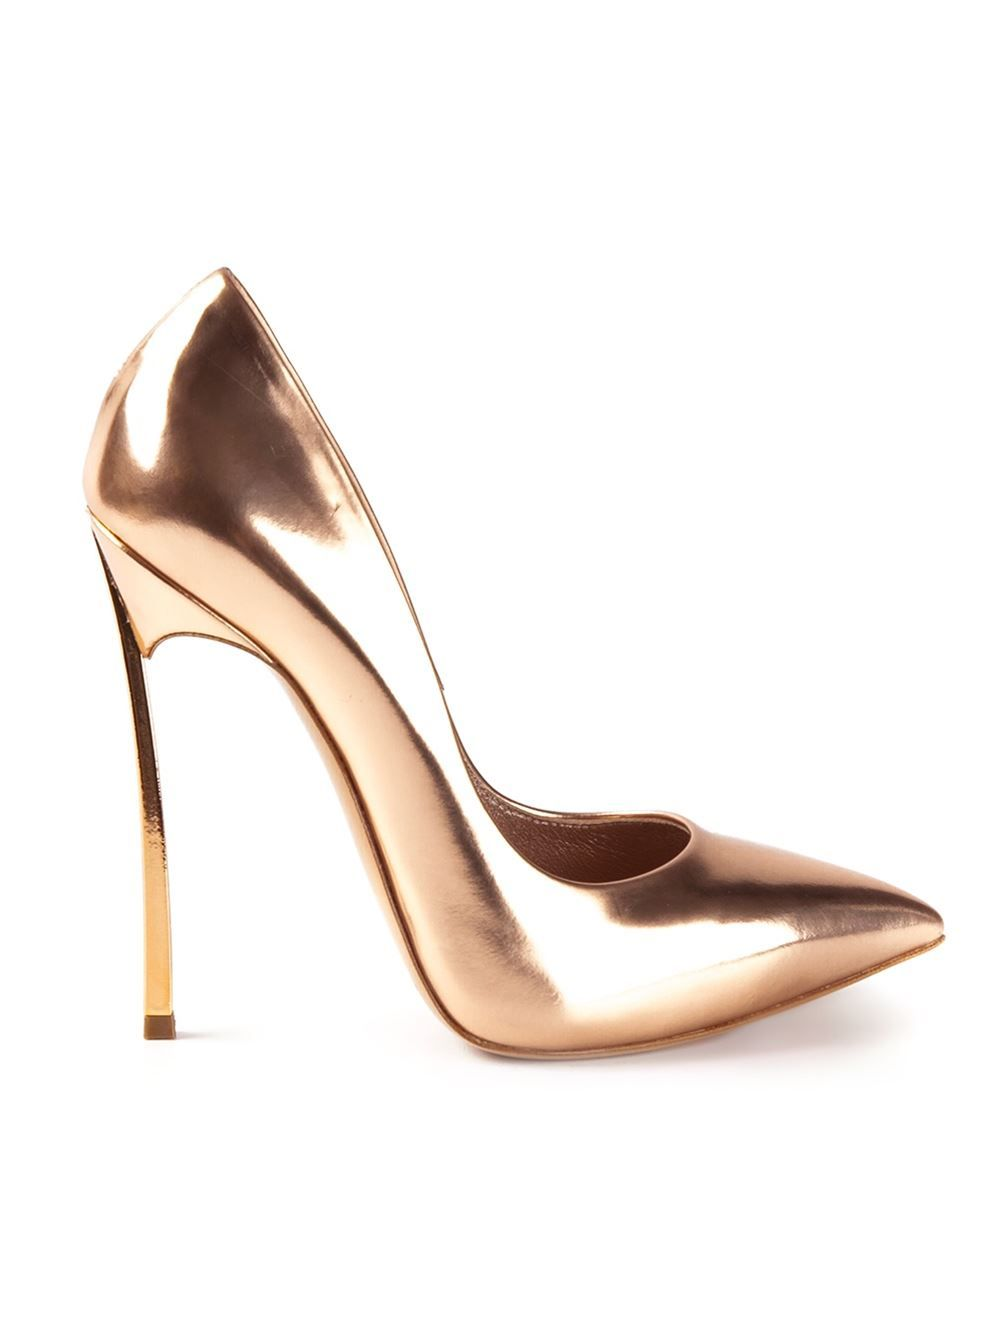 Pair these metallic pumps with an all white matching set a la Emma Roberts // Casadei High Heel Pumps ($777)